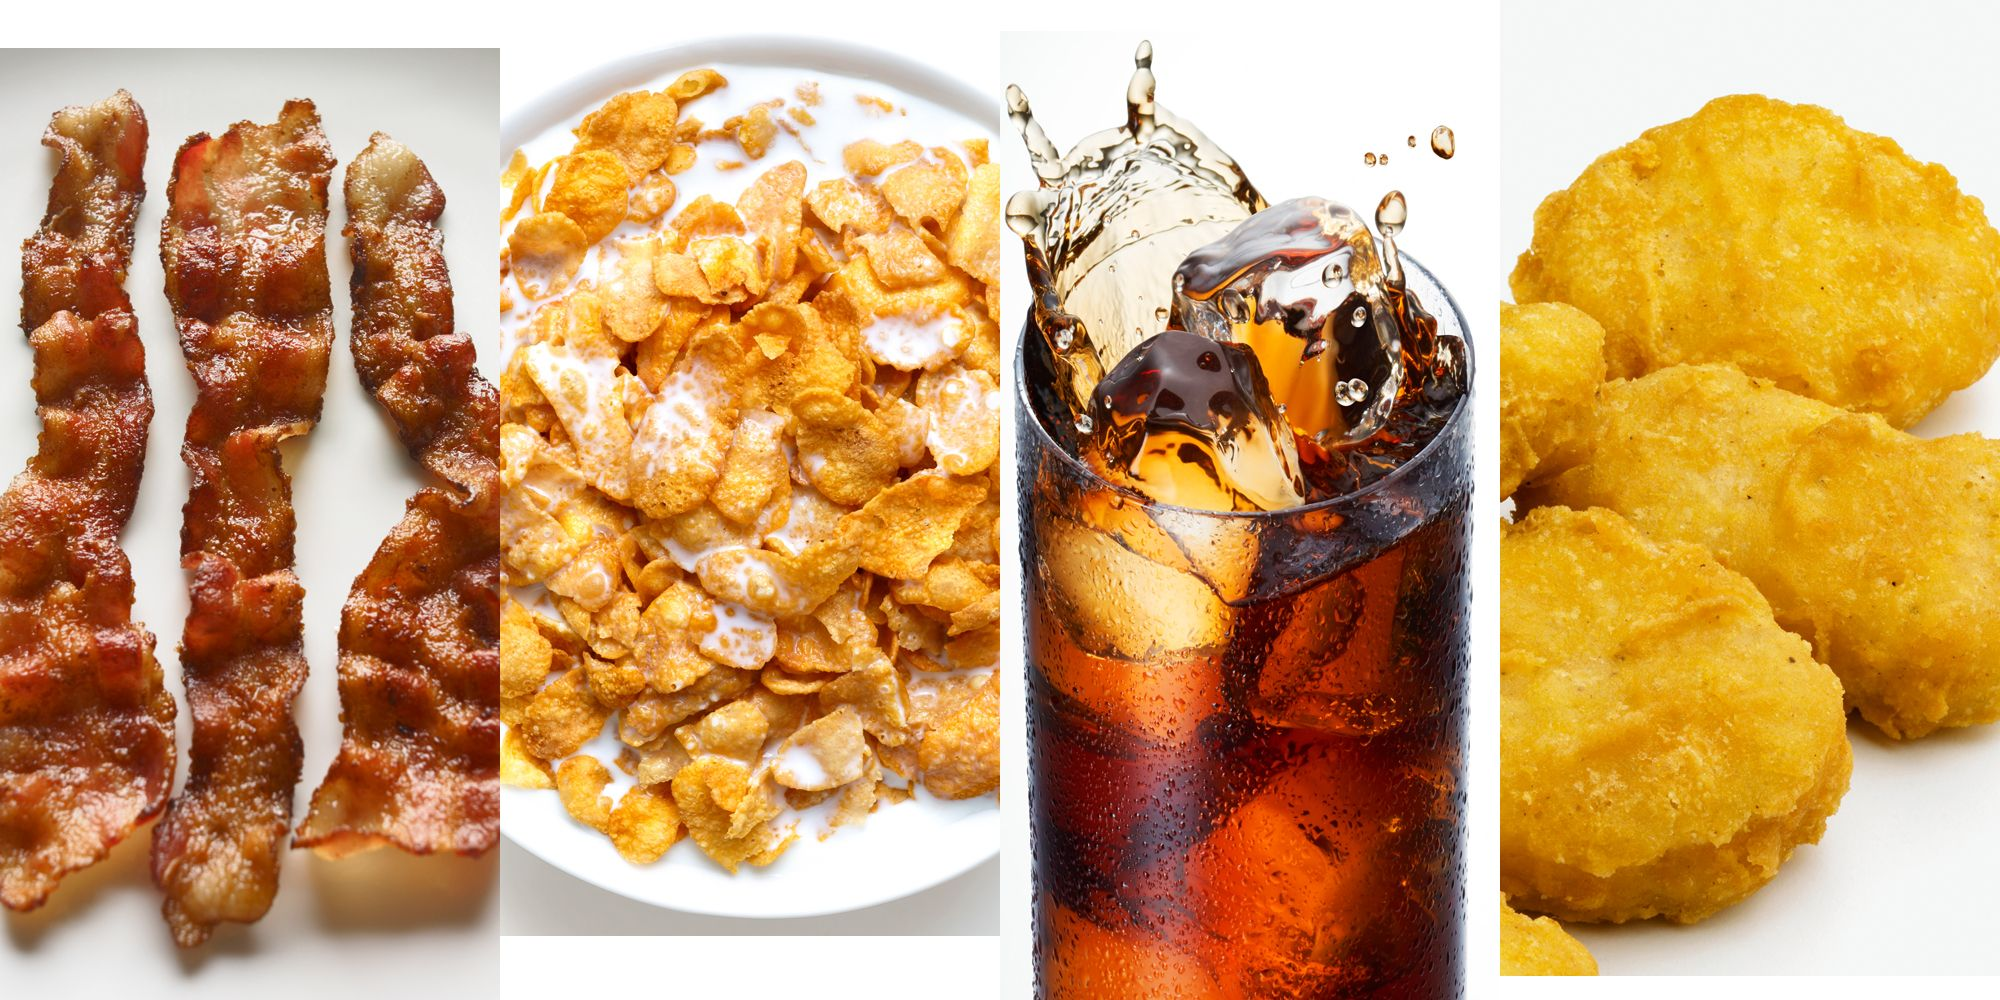 Chicken Nuggets, Cereal, and Bacon Cause Cancer, According